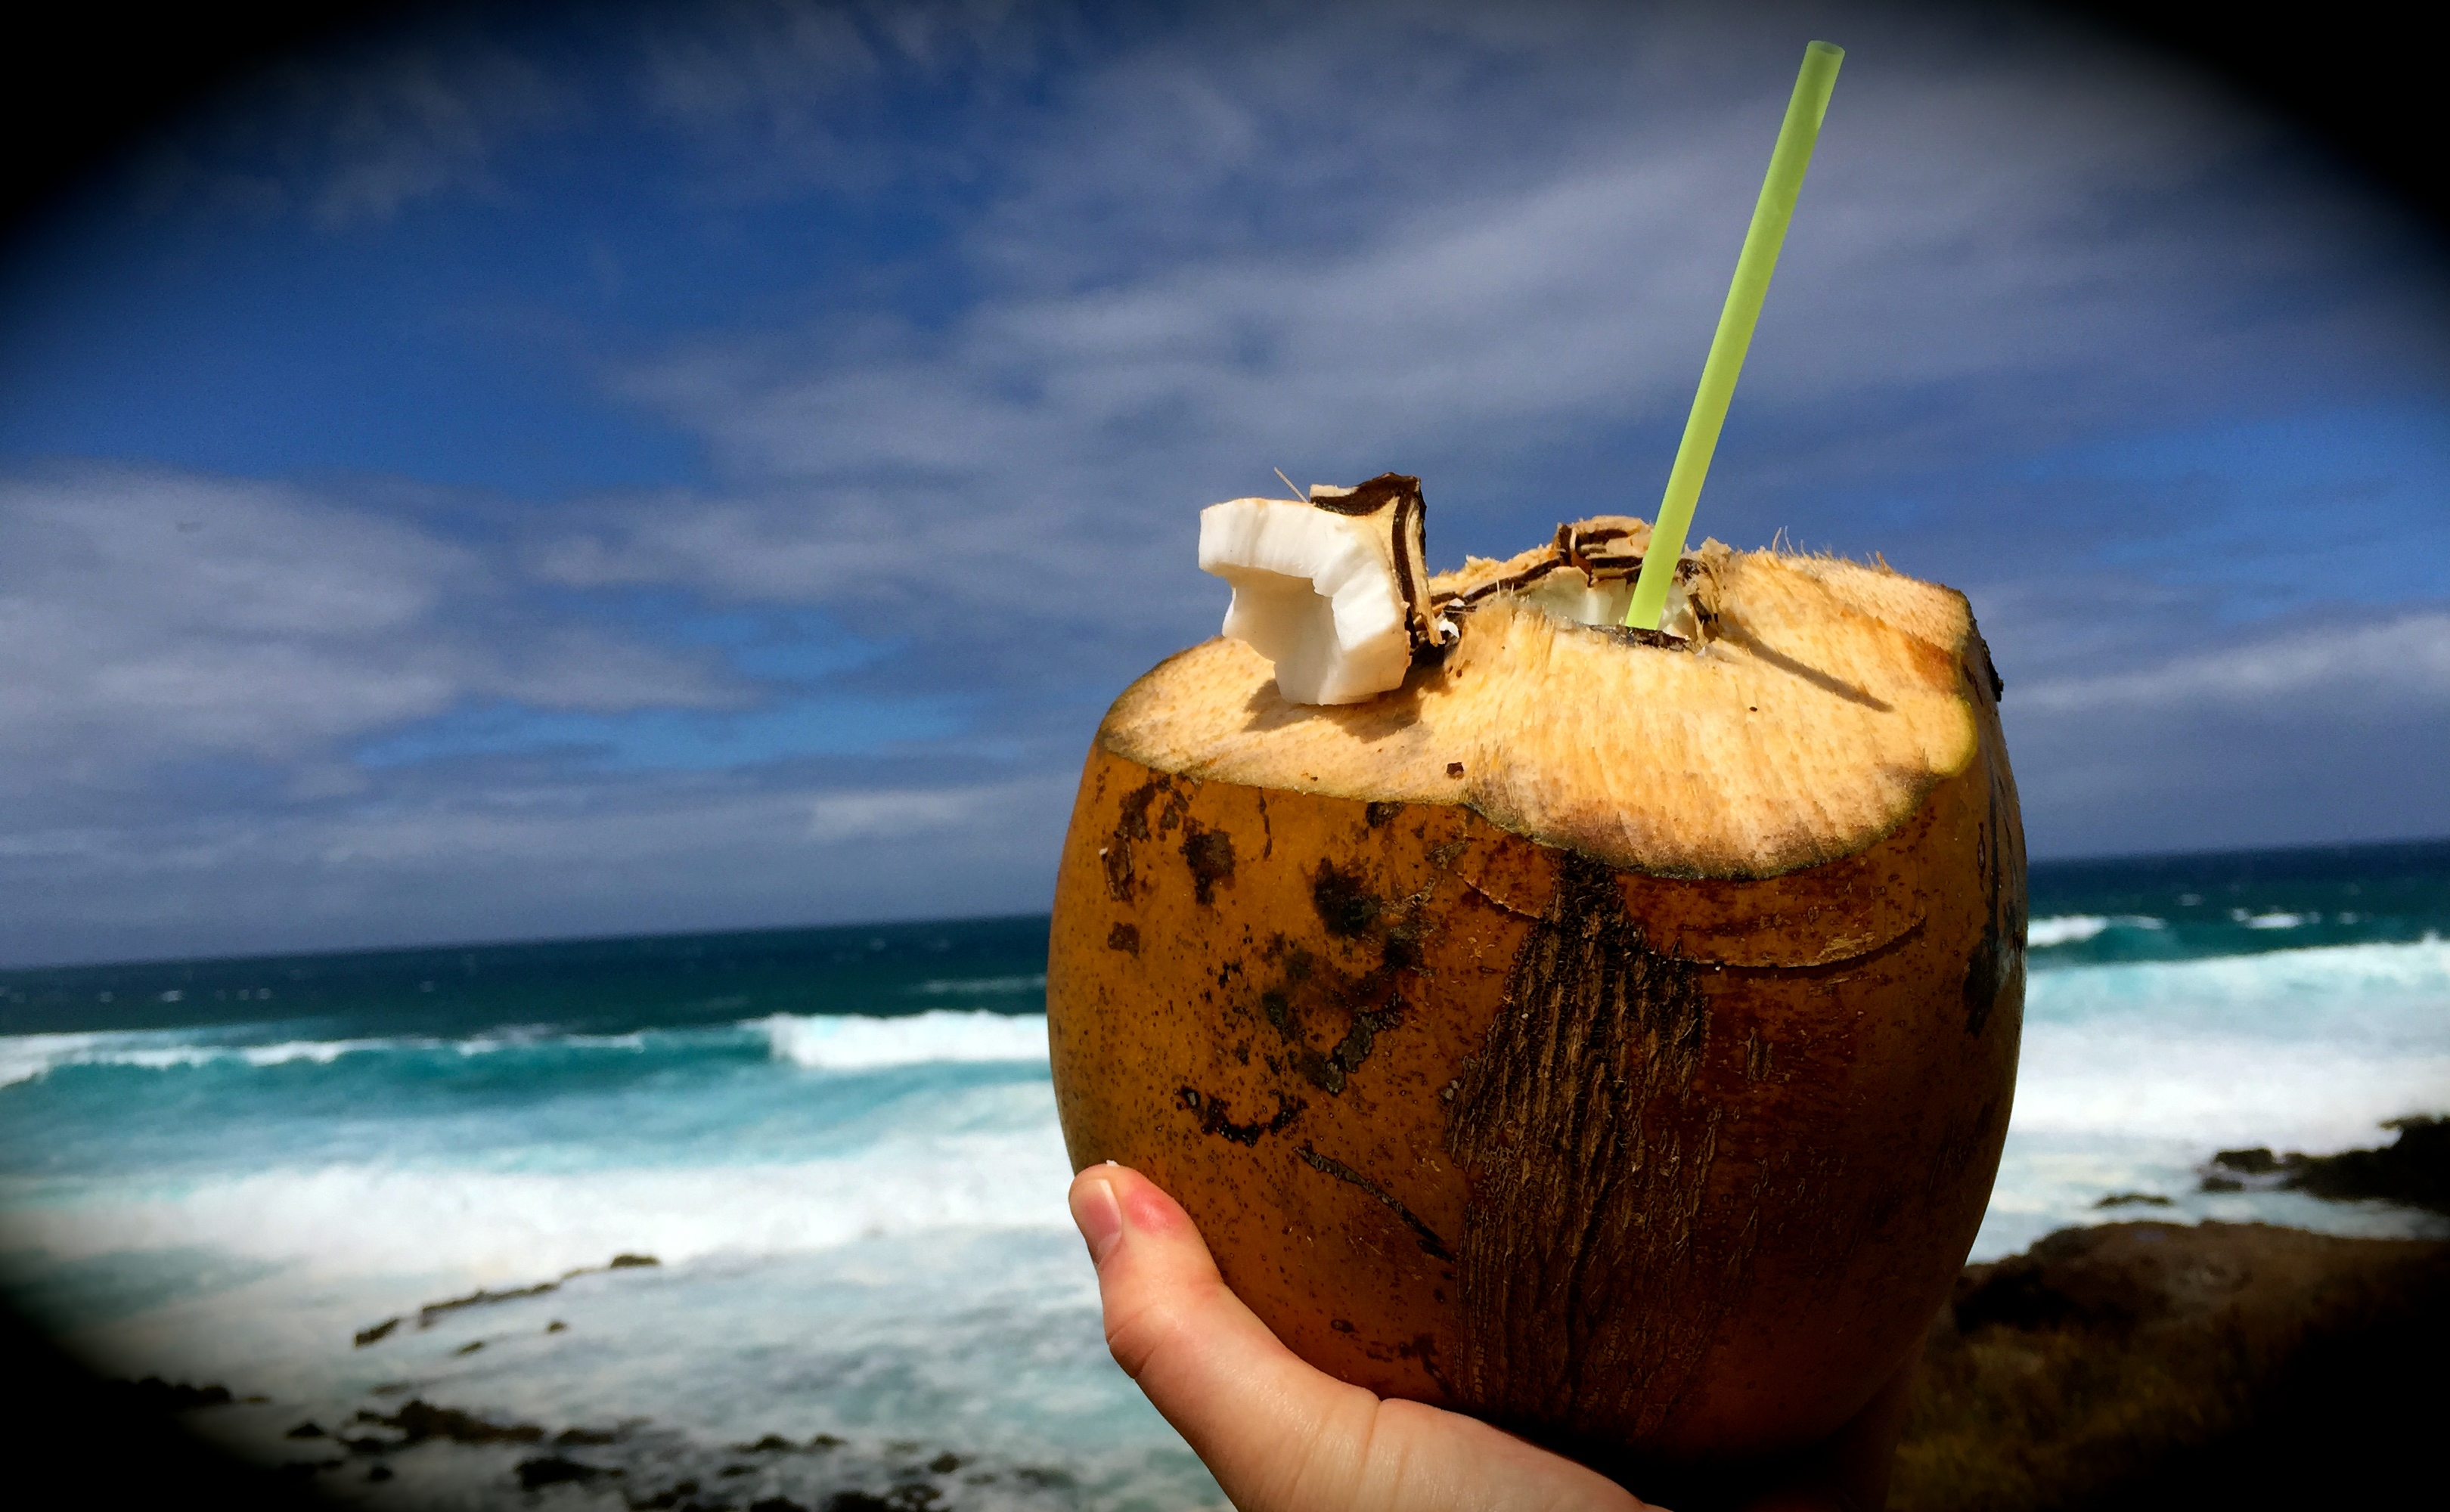 Nothing like a coconut with a view